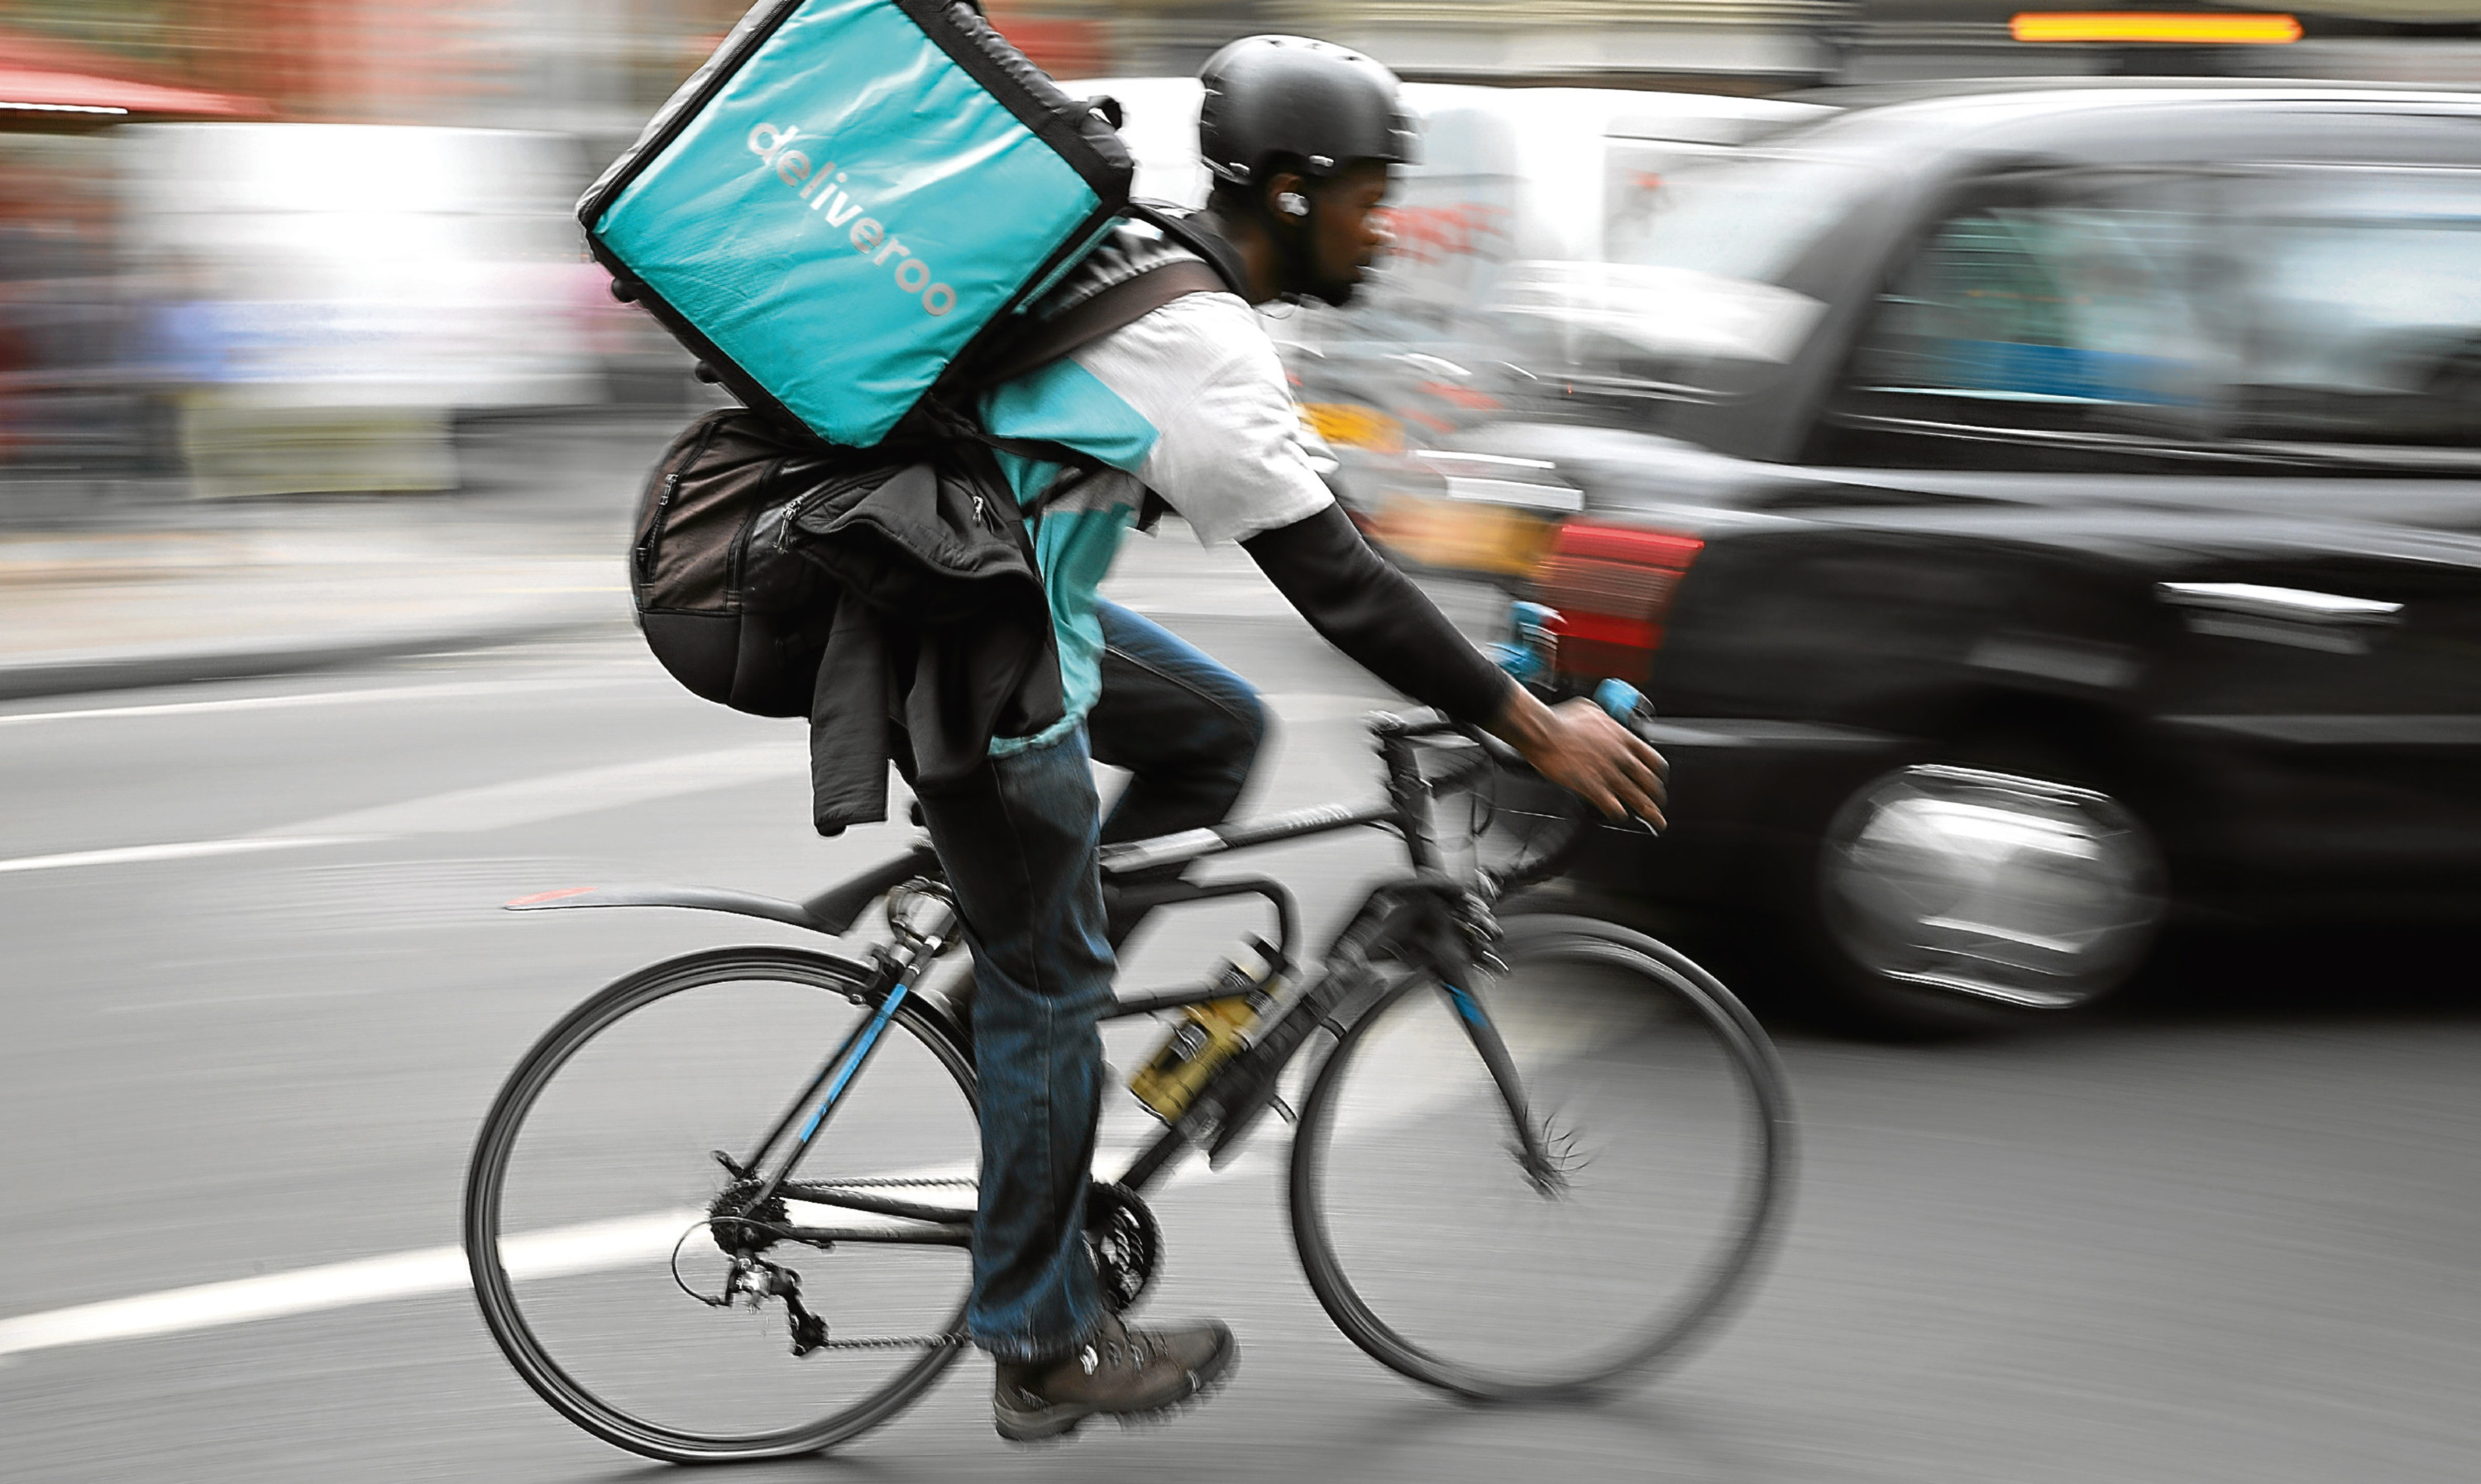 Deliveroo's CEO Will Shu has said the law needs to keep pace with the changing economy